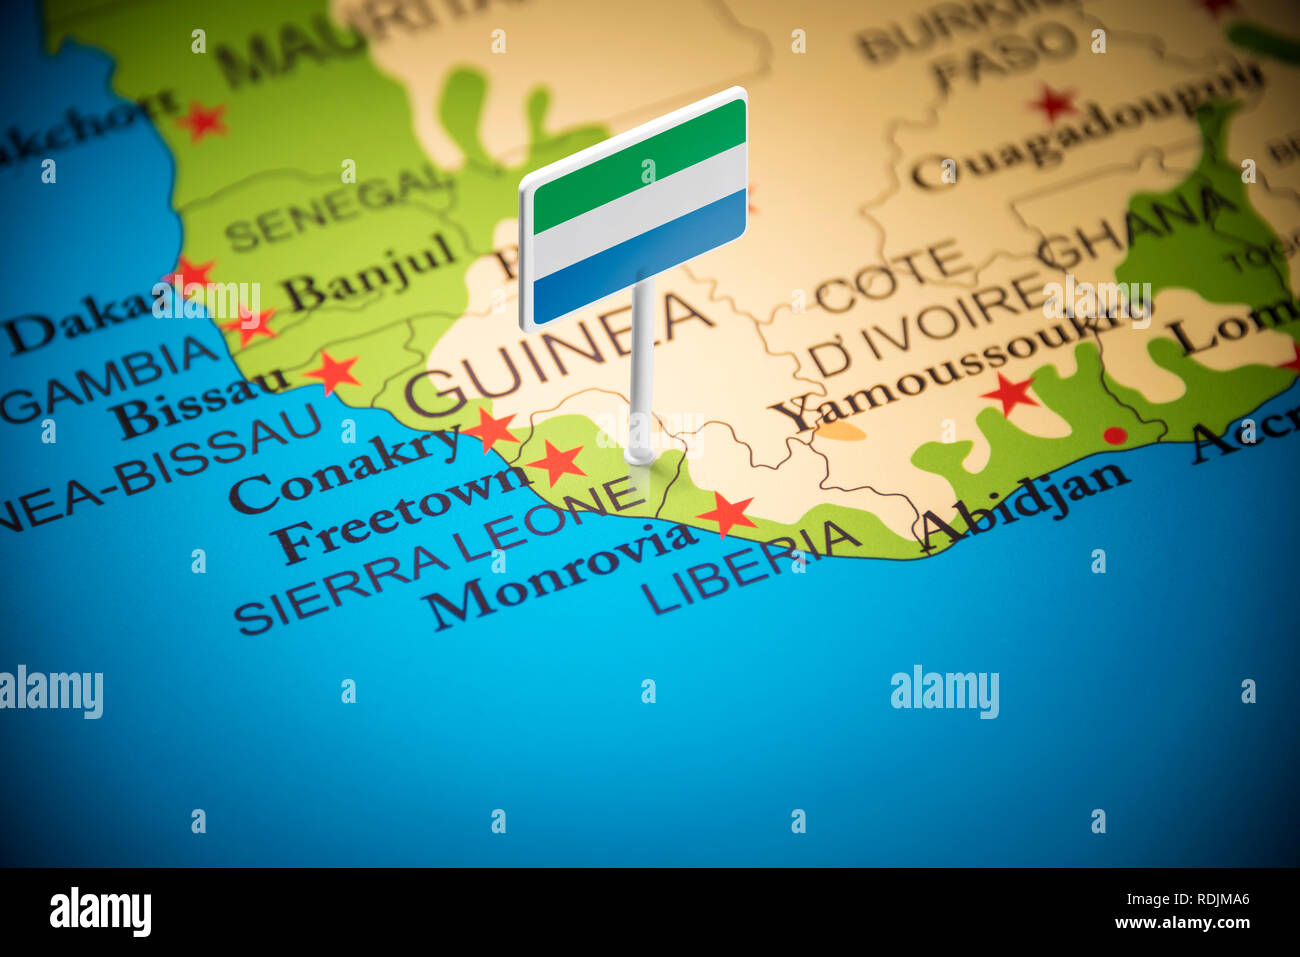 Sierra Leone marked with a flag on the map - Stock Image